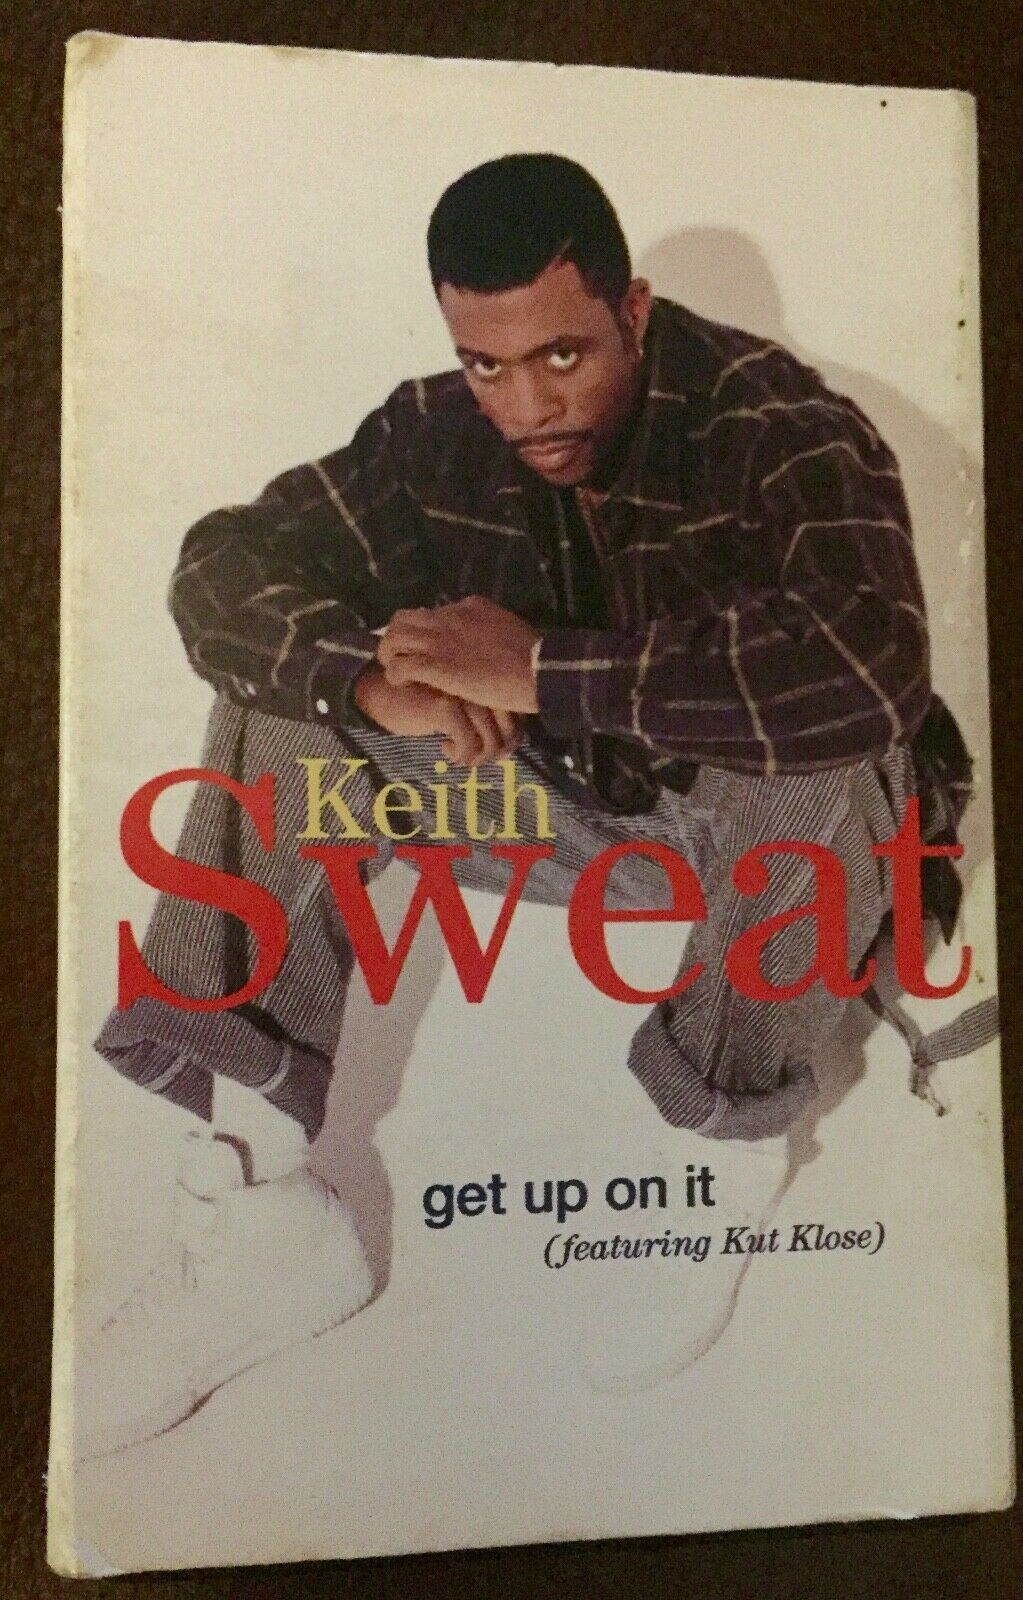 Primary image for Vintage Keith Sweat Get Up on It cassette tape single PLUS Absoulute Casette